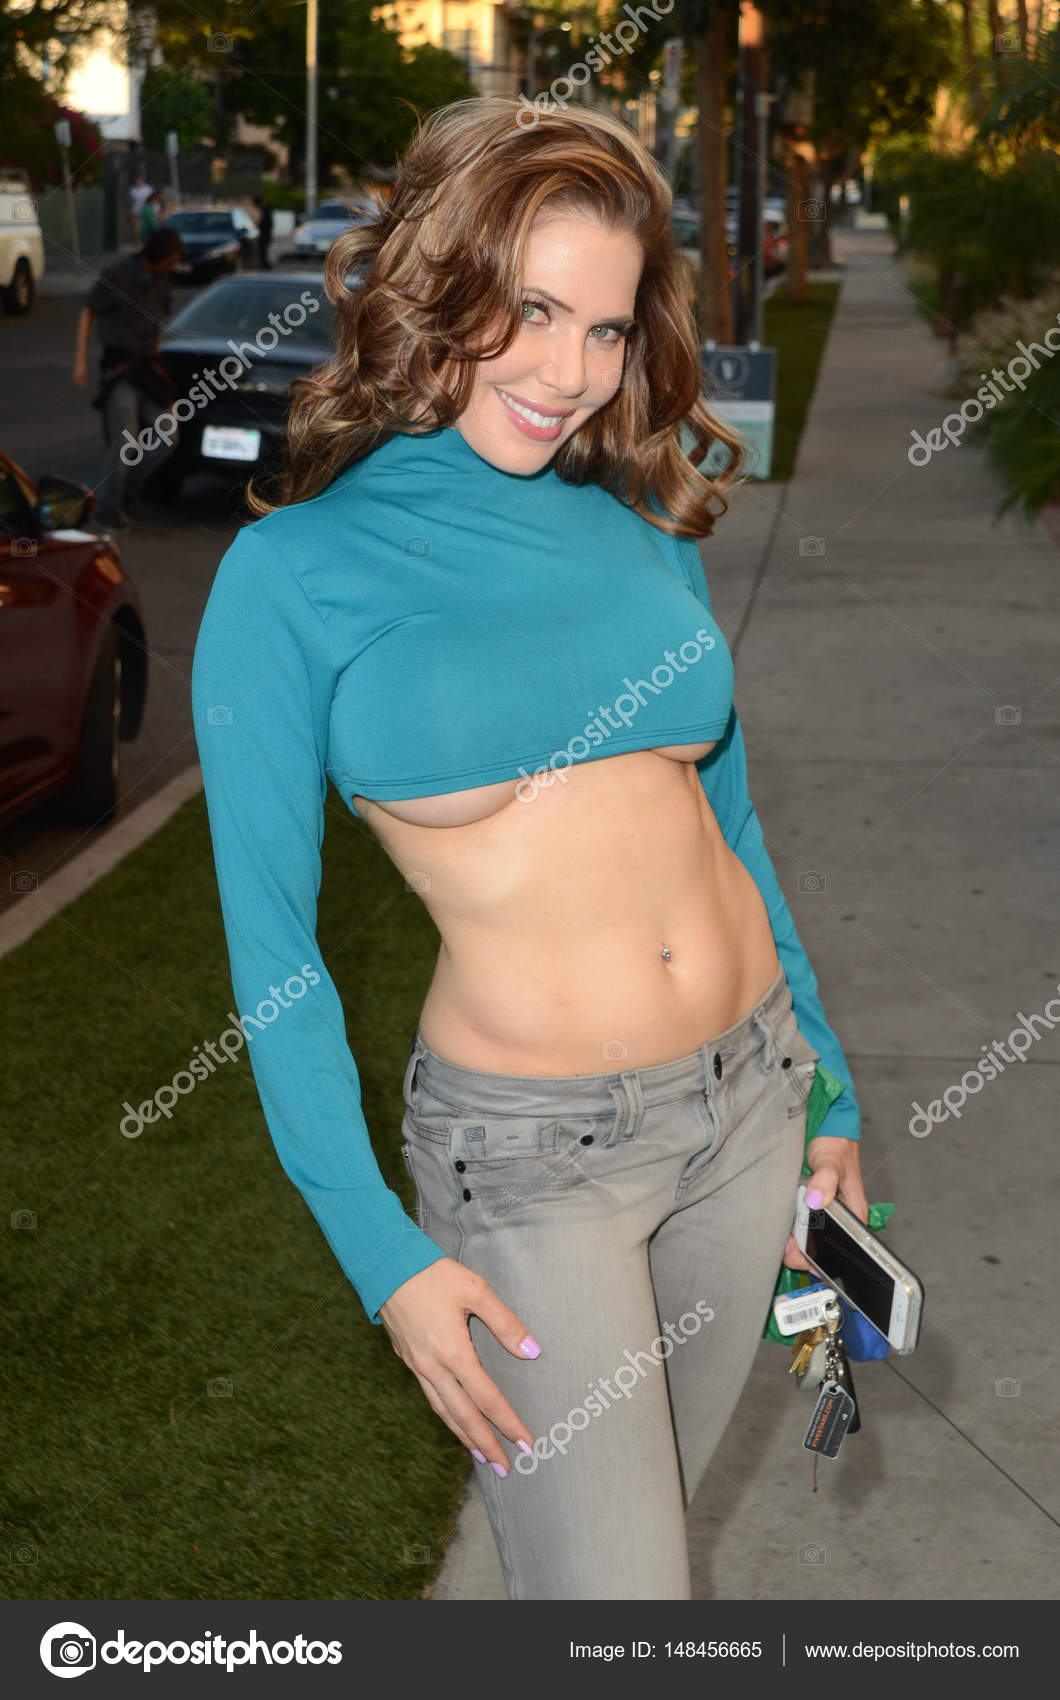 manguera pausa Siempre  Erika Jordan at the street – Stock Editorial Photo © s_bukley #148456665